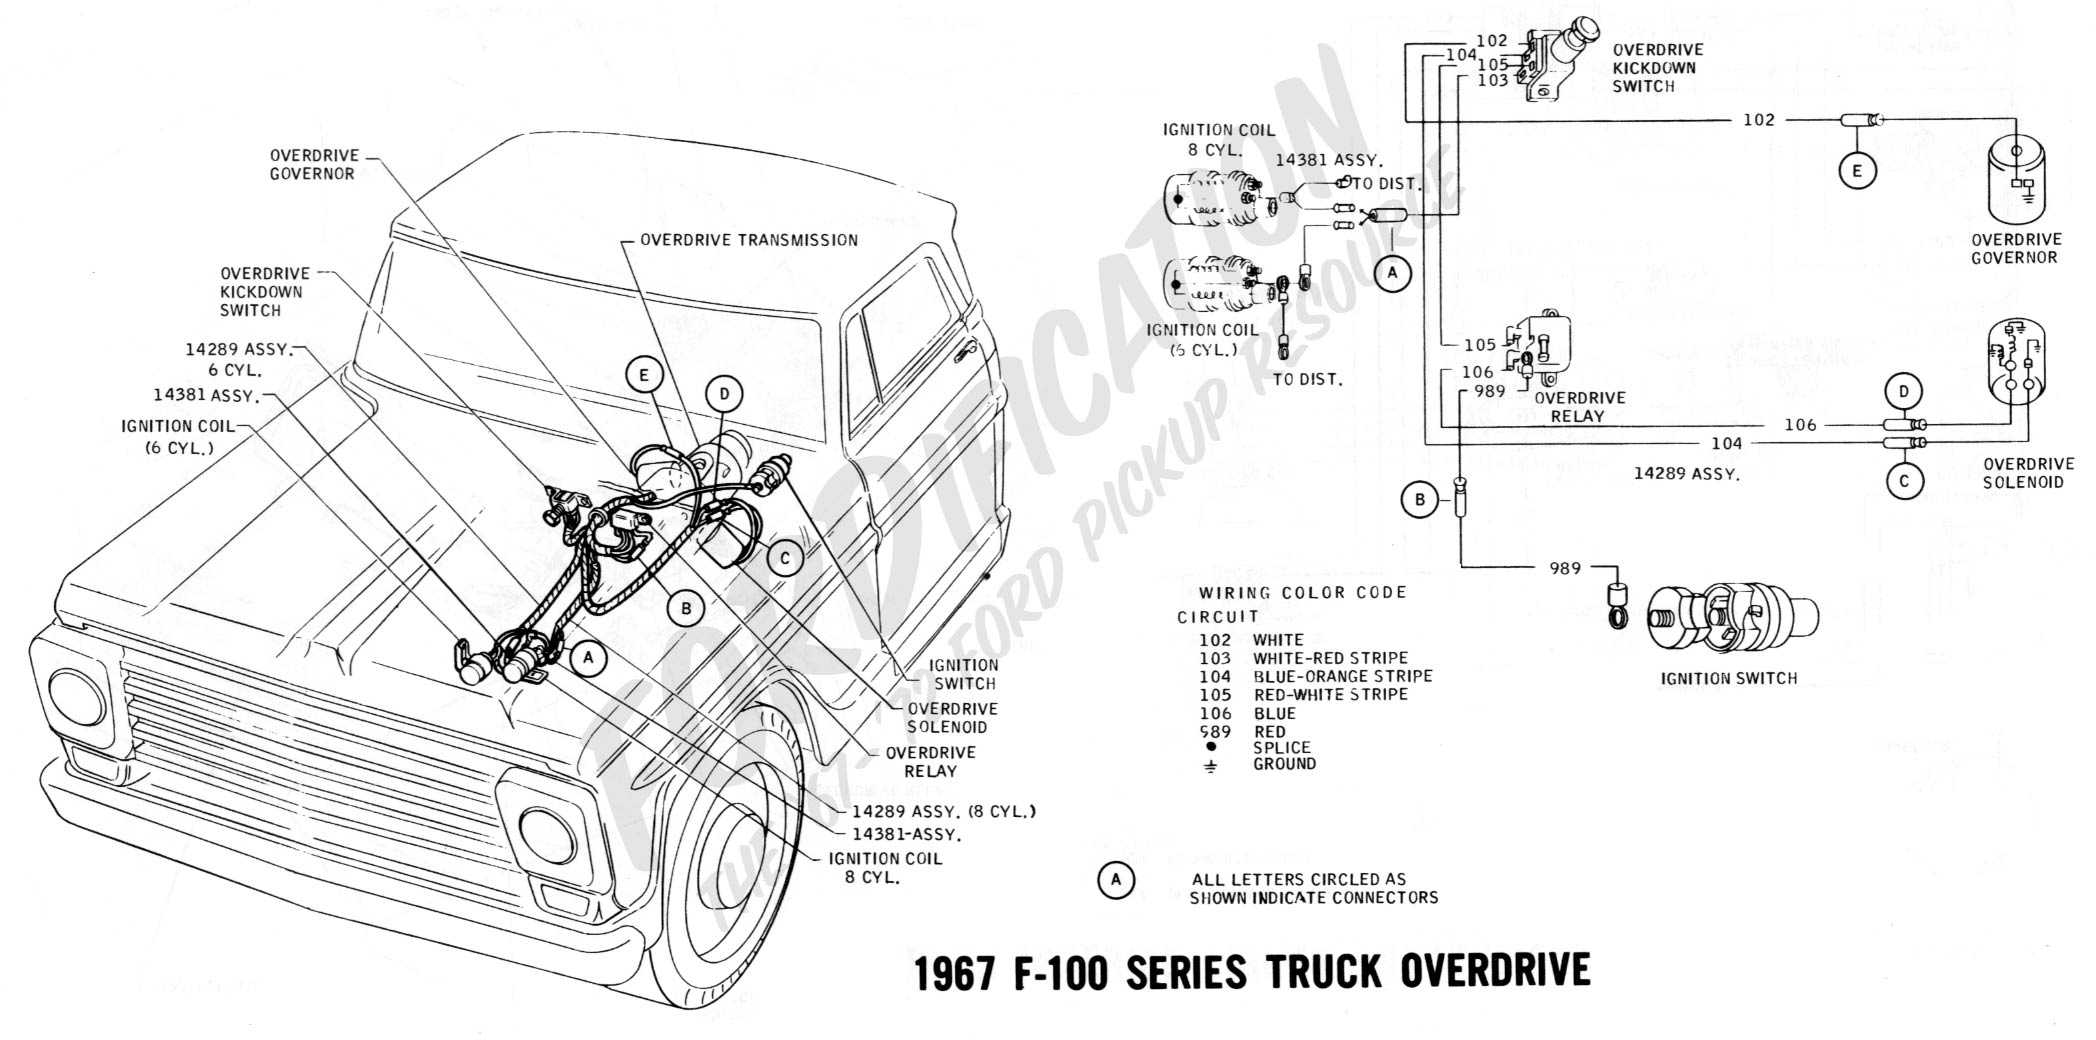 Sherry Designs Conversion Van Wiring Diagram